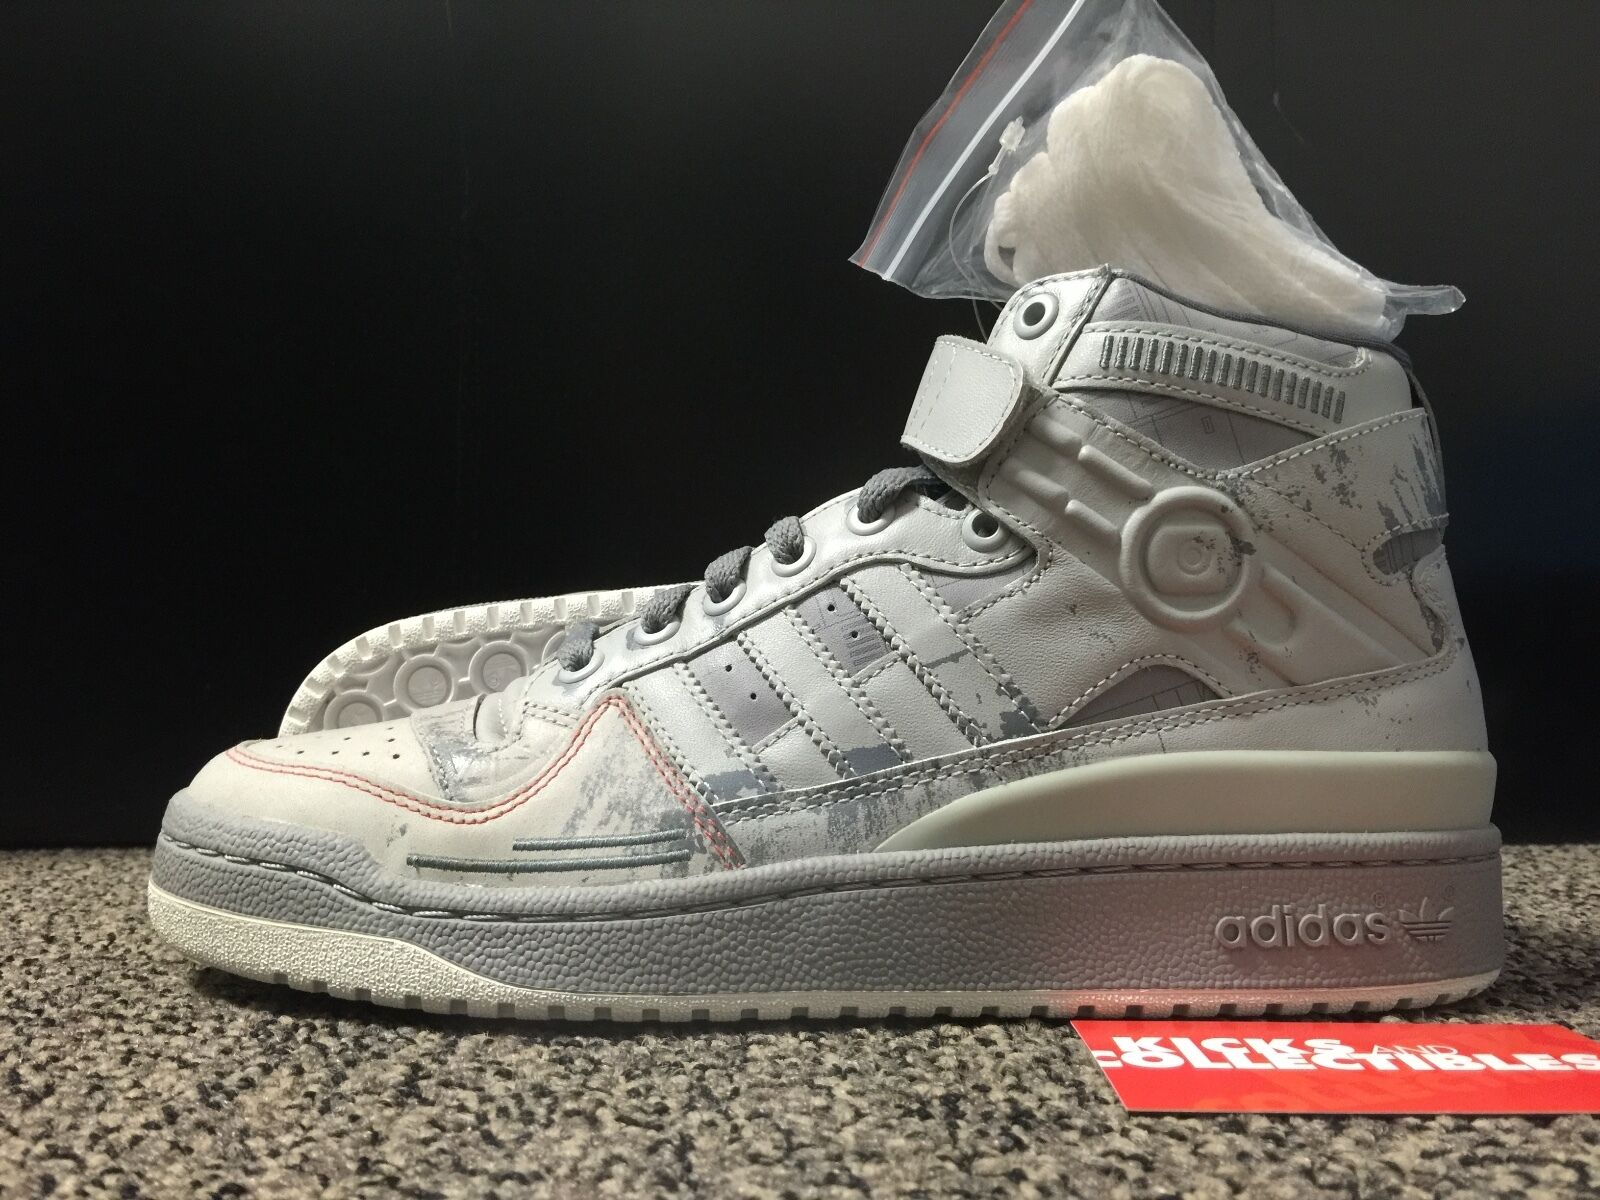 low priced 68985 50be0 good ADIDAS ORIGINALS X STAR WARS AT AT FORUM MID G17354 DS 8.5 force new  grey